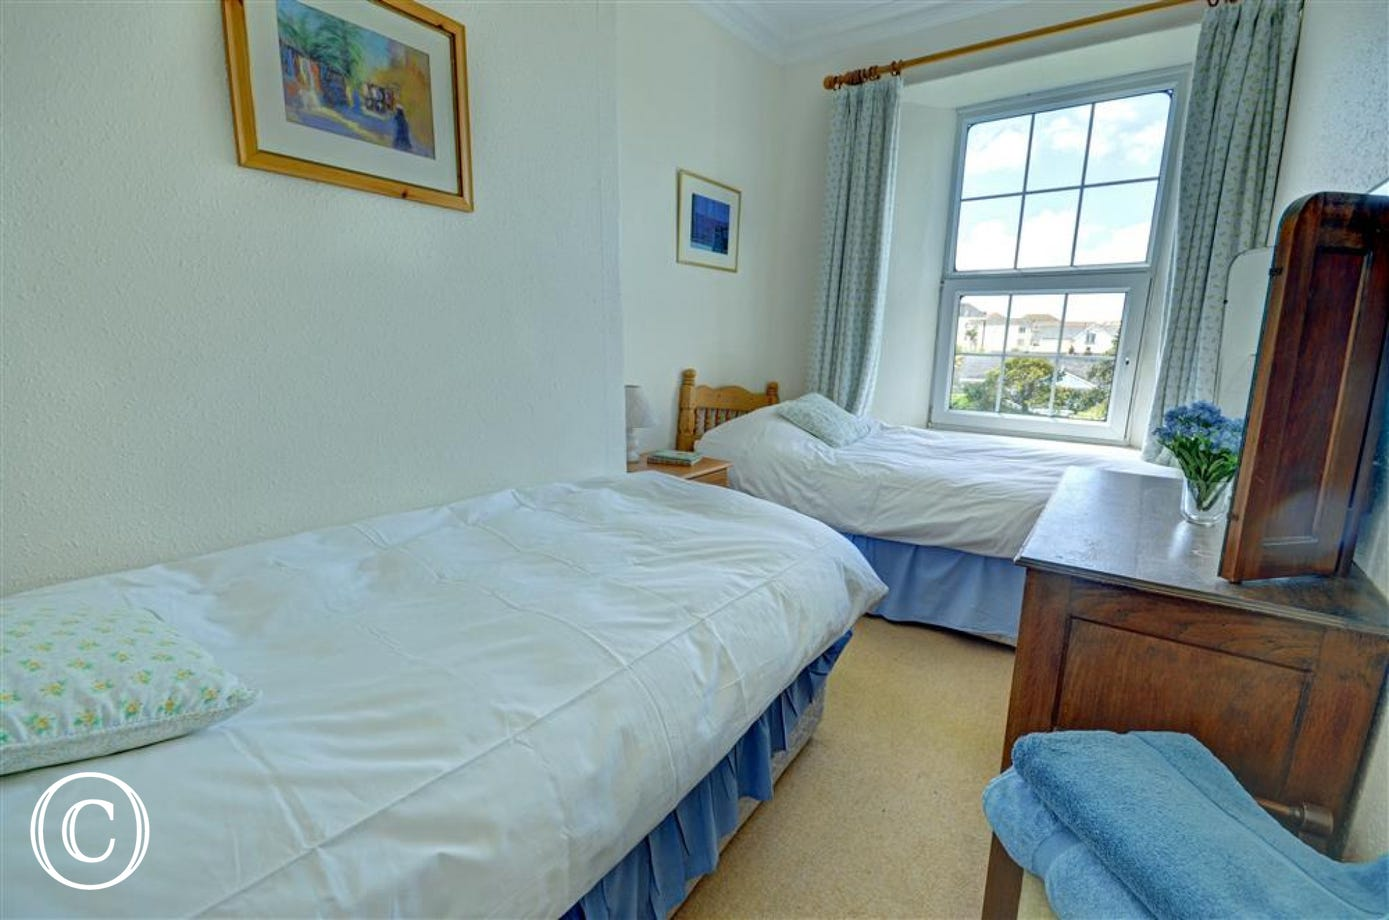 A twin bedded room that has been traditionally furnished